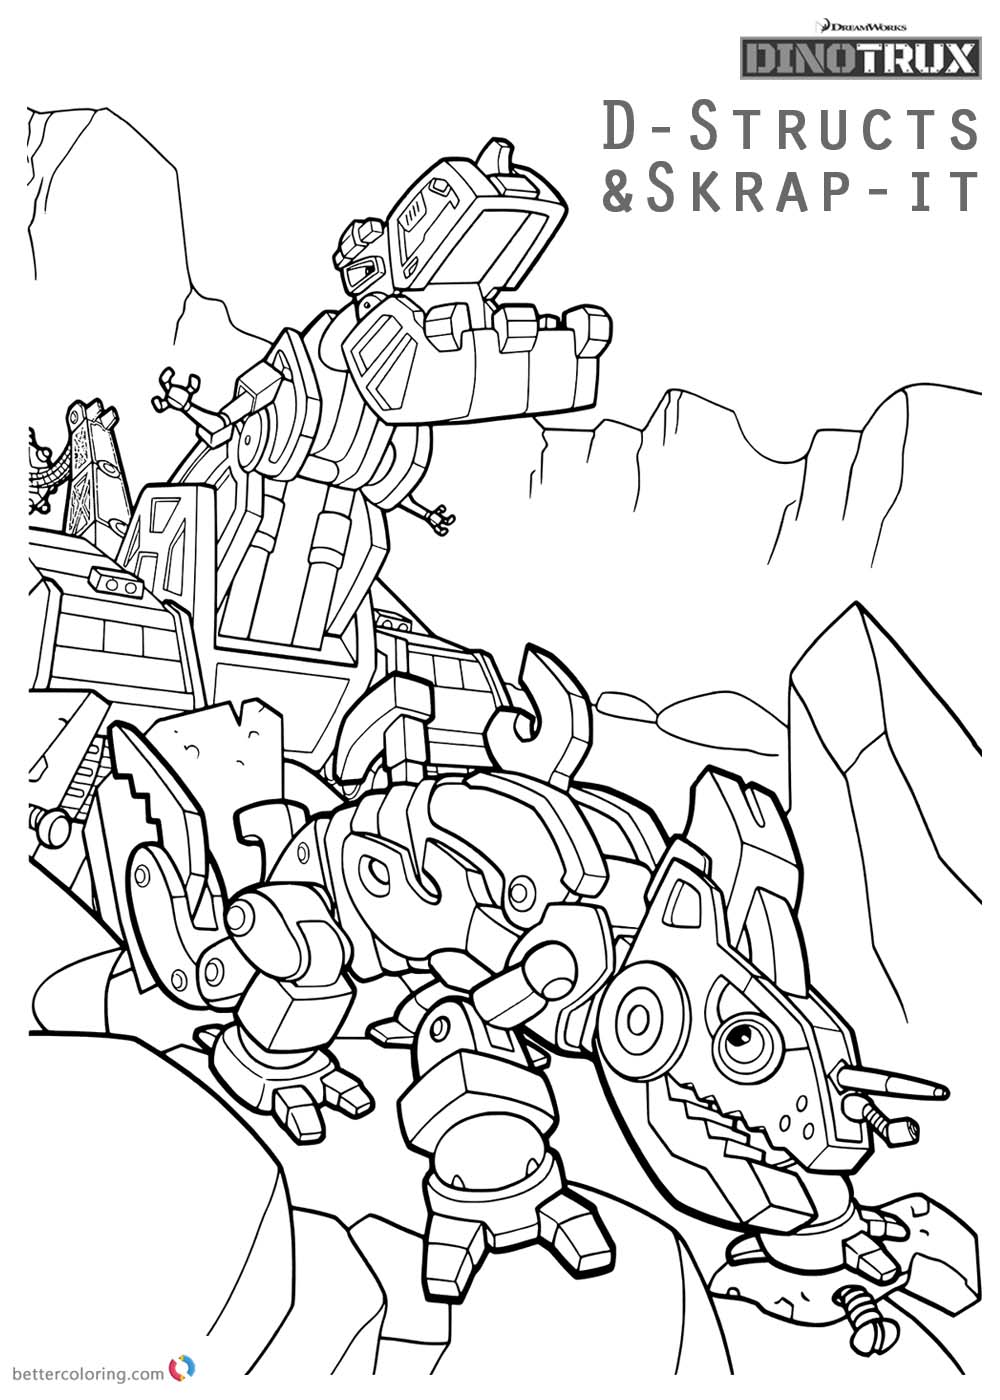 Dinotrux coloring pages D-Structs and Skrap-it printable